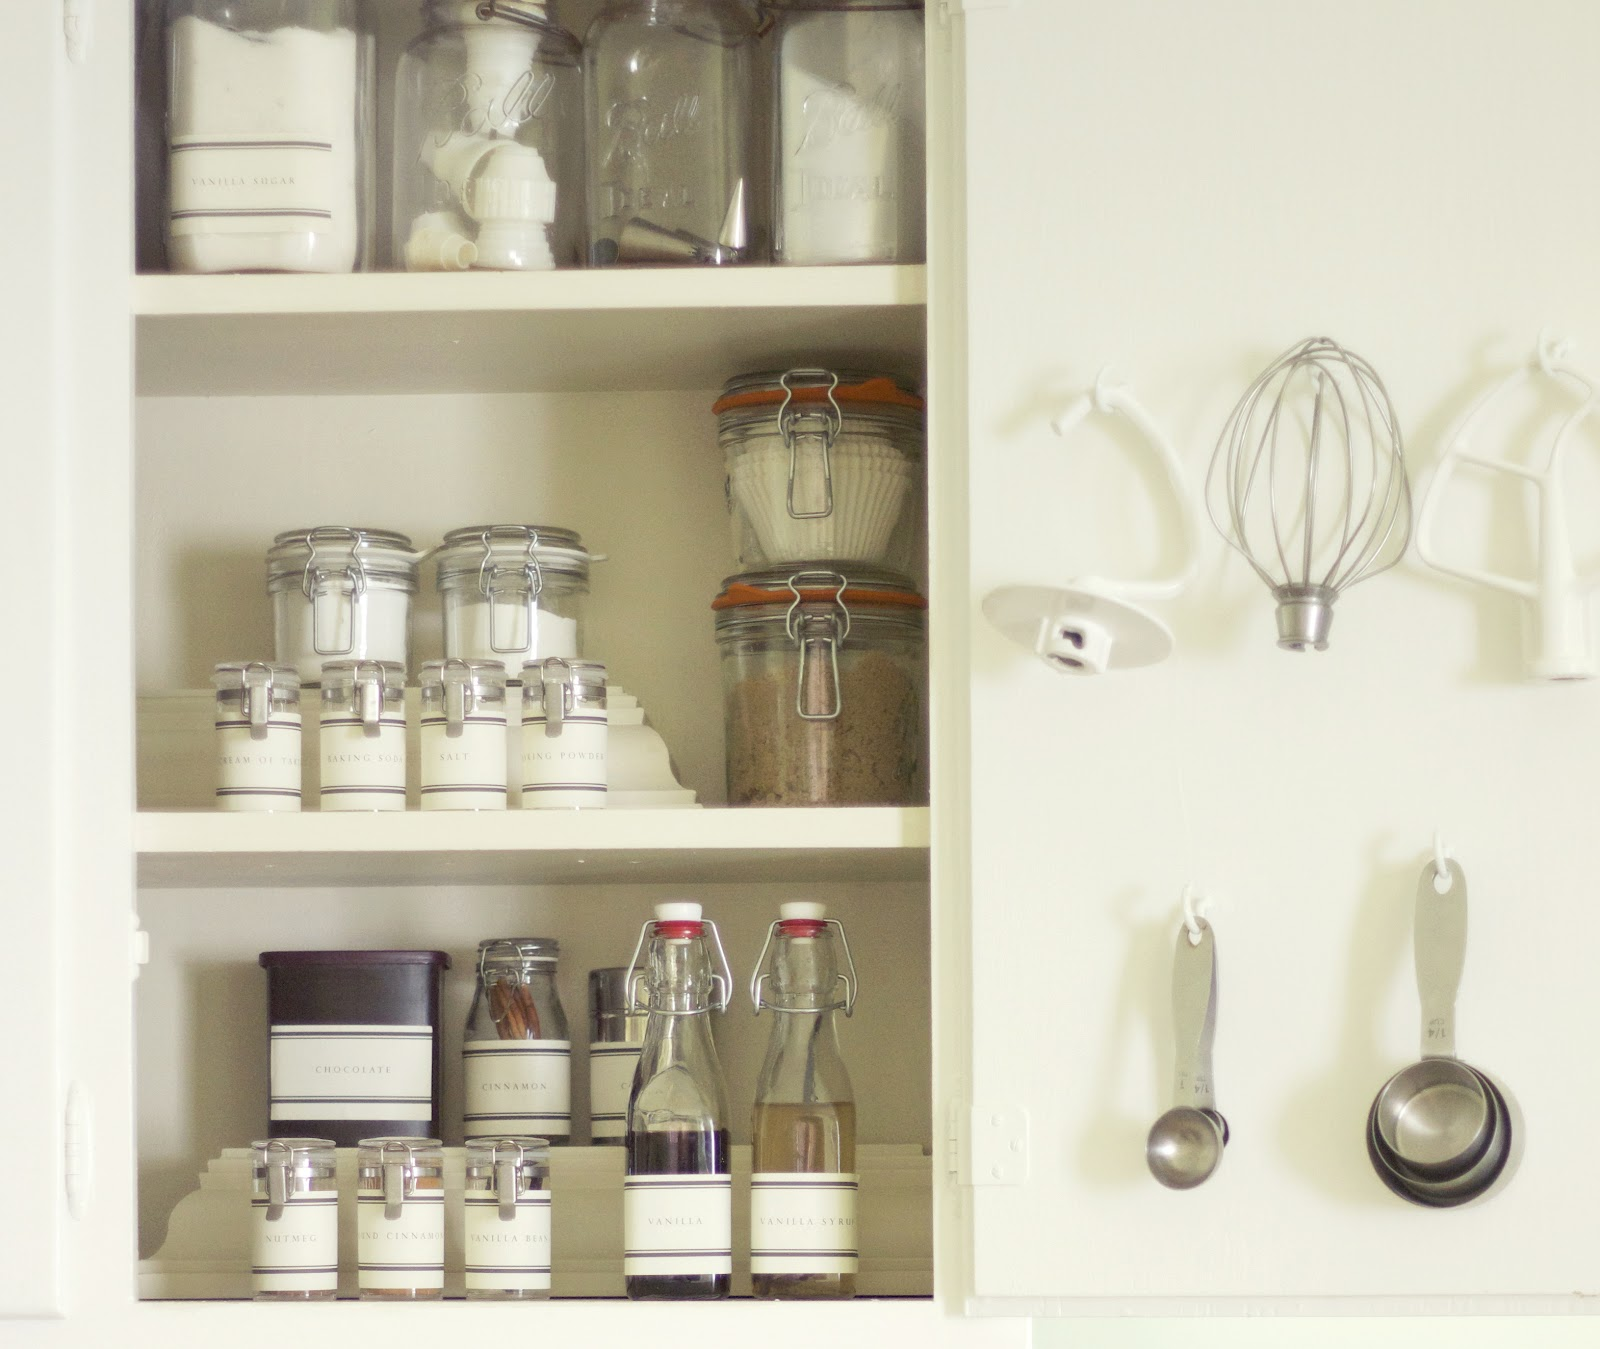 Kitchen Cabinet Organization Ideas: Jenny Steffens Hobick: Baking Pantry In A Cabinet